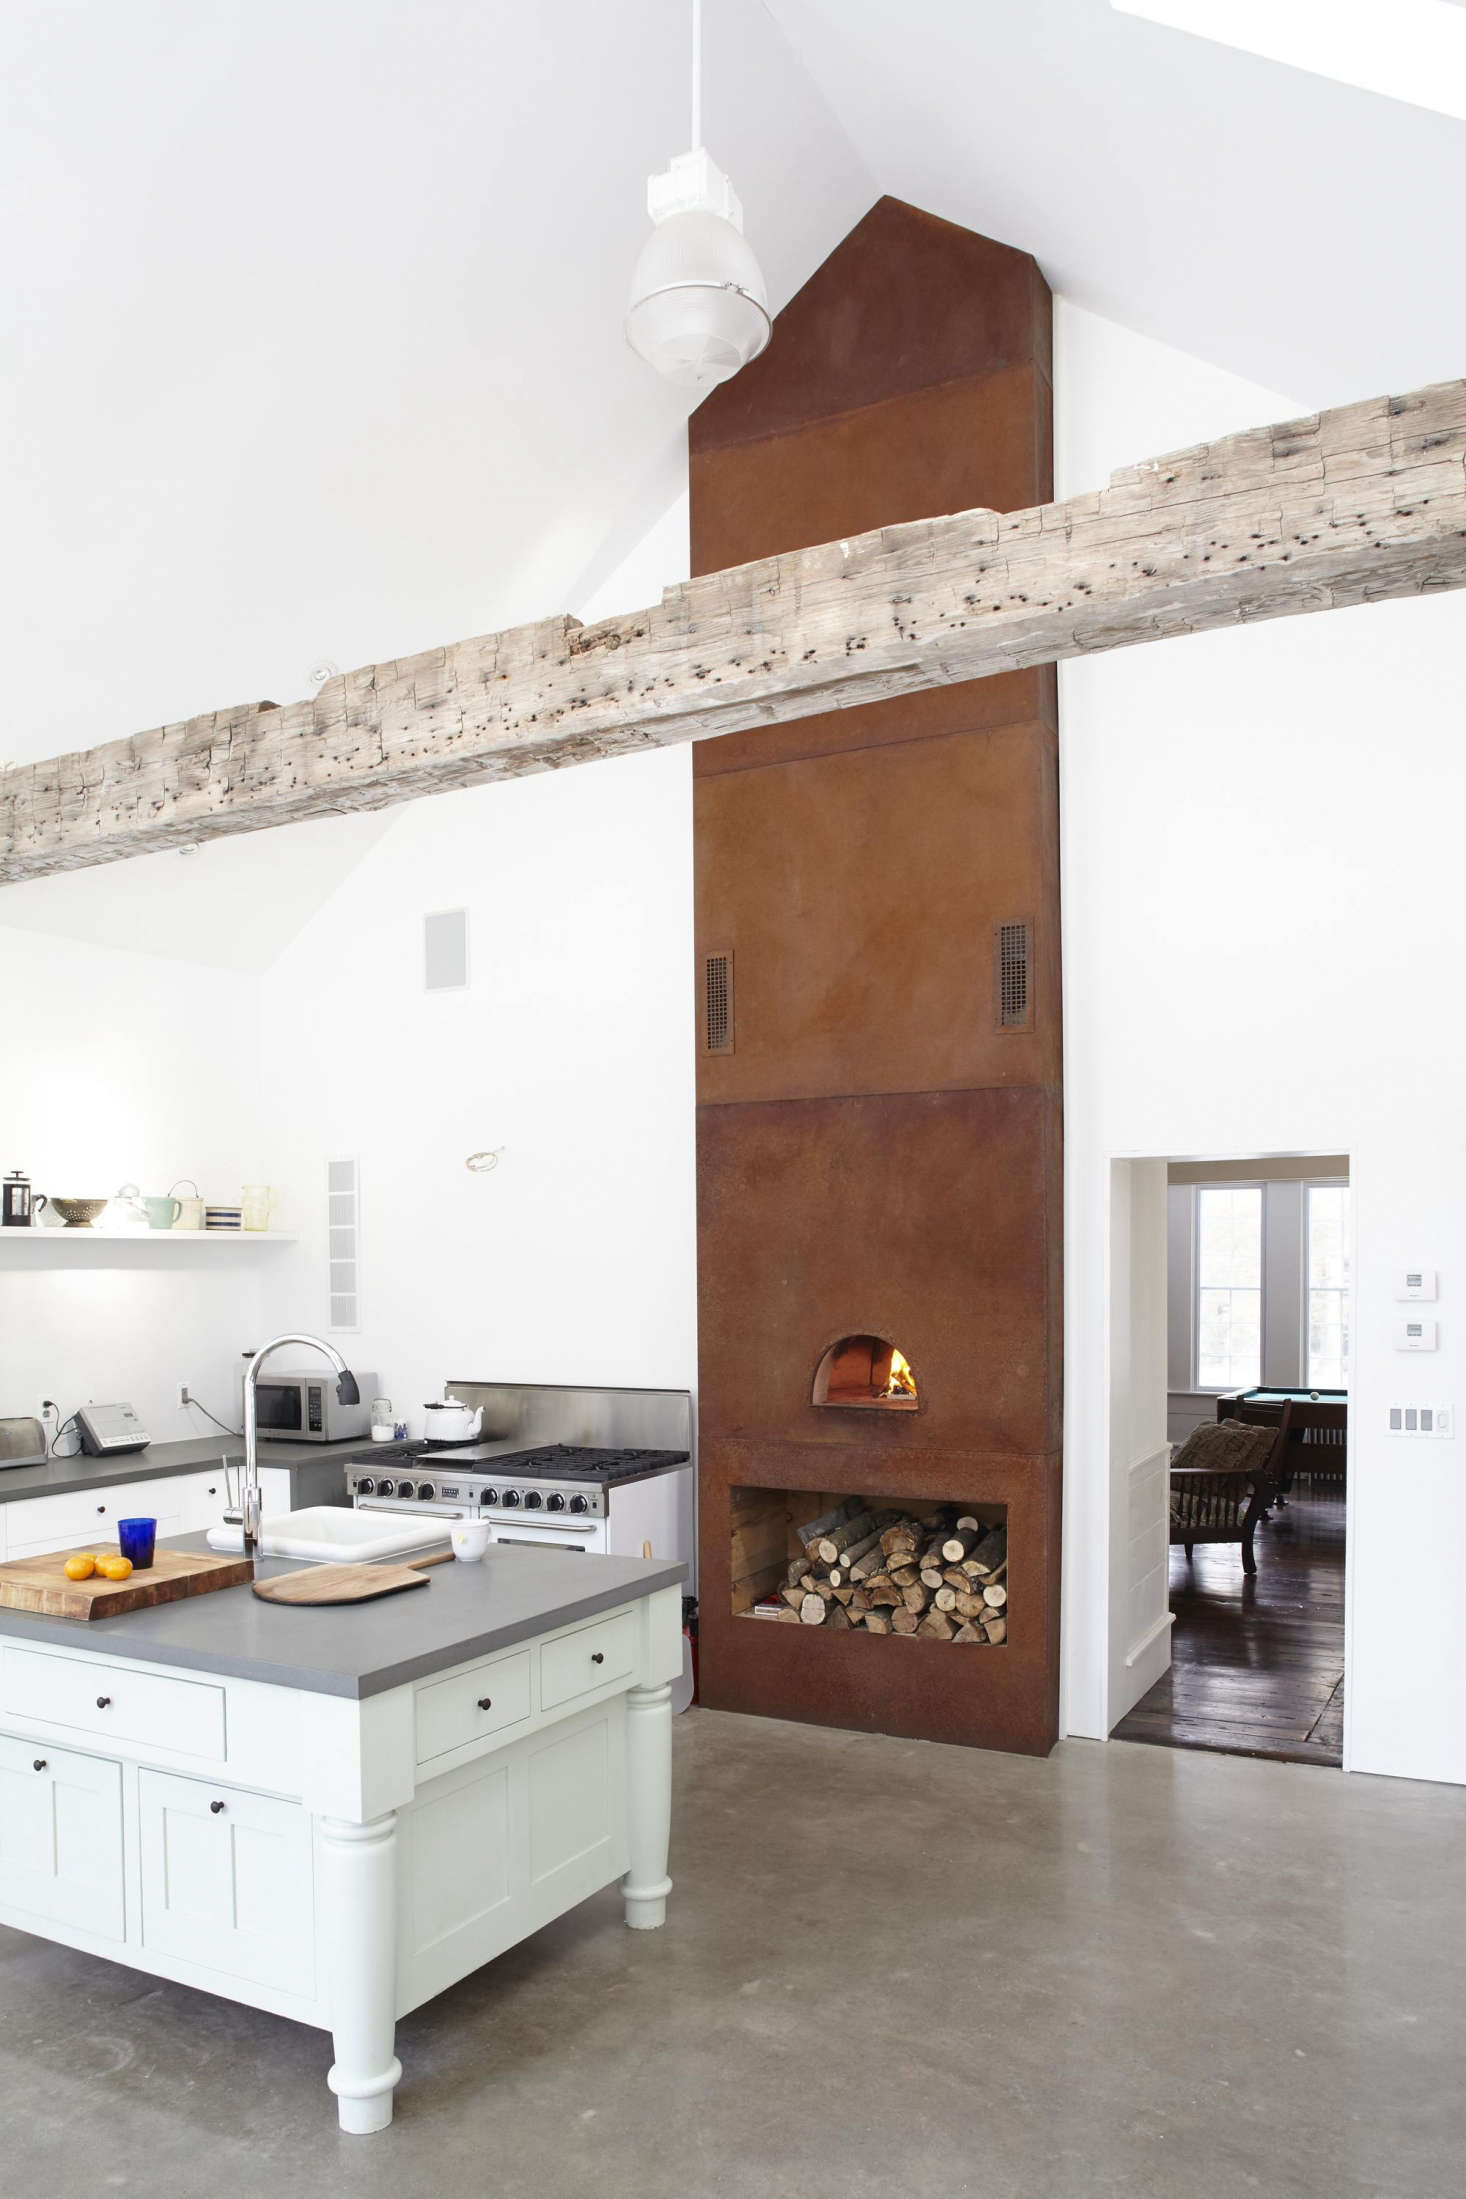 The kitchen has a wood-fired pizza oven faced with oxidized Corten steel. For more on the details of the kitchen see our postSteal This Look: The Ultimate Farmhouse Kitchen.